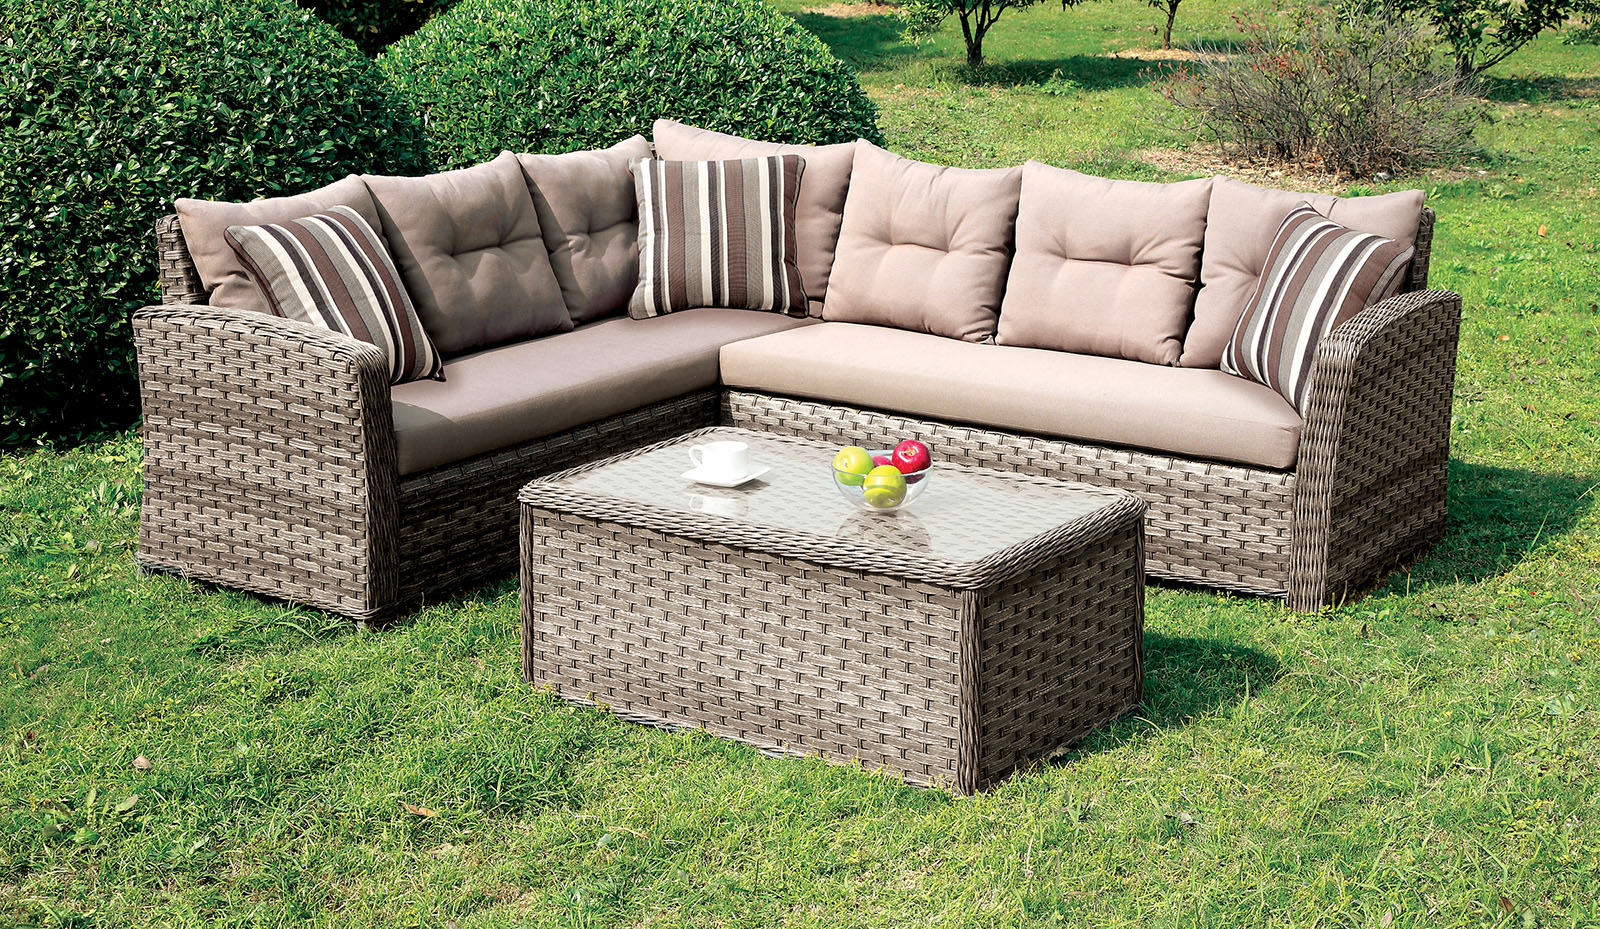 Moura 1816 brown outdoor patio sectional sofa - Outdoor sectionals for small spaces collection ...